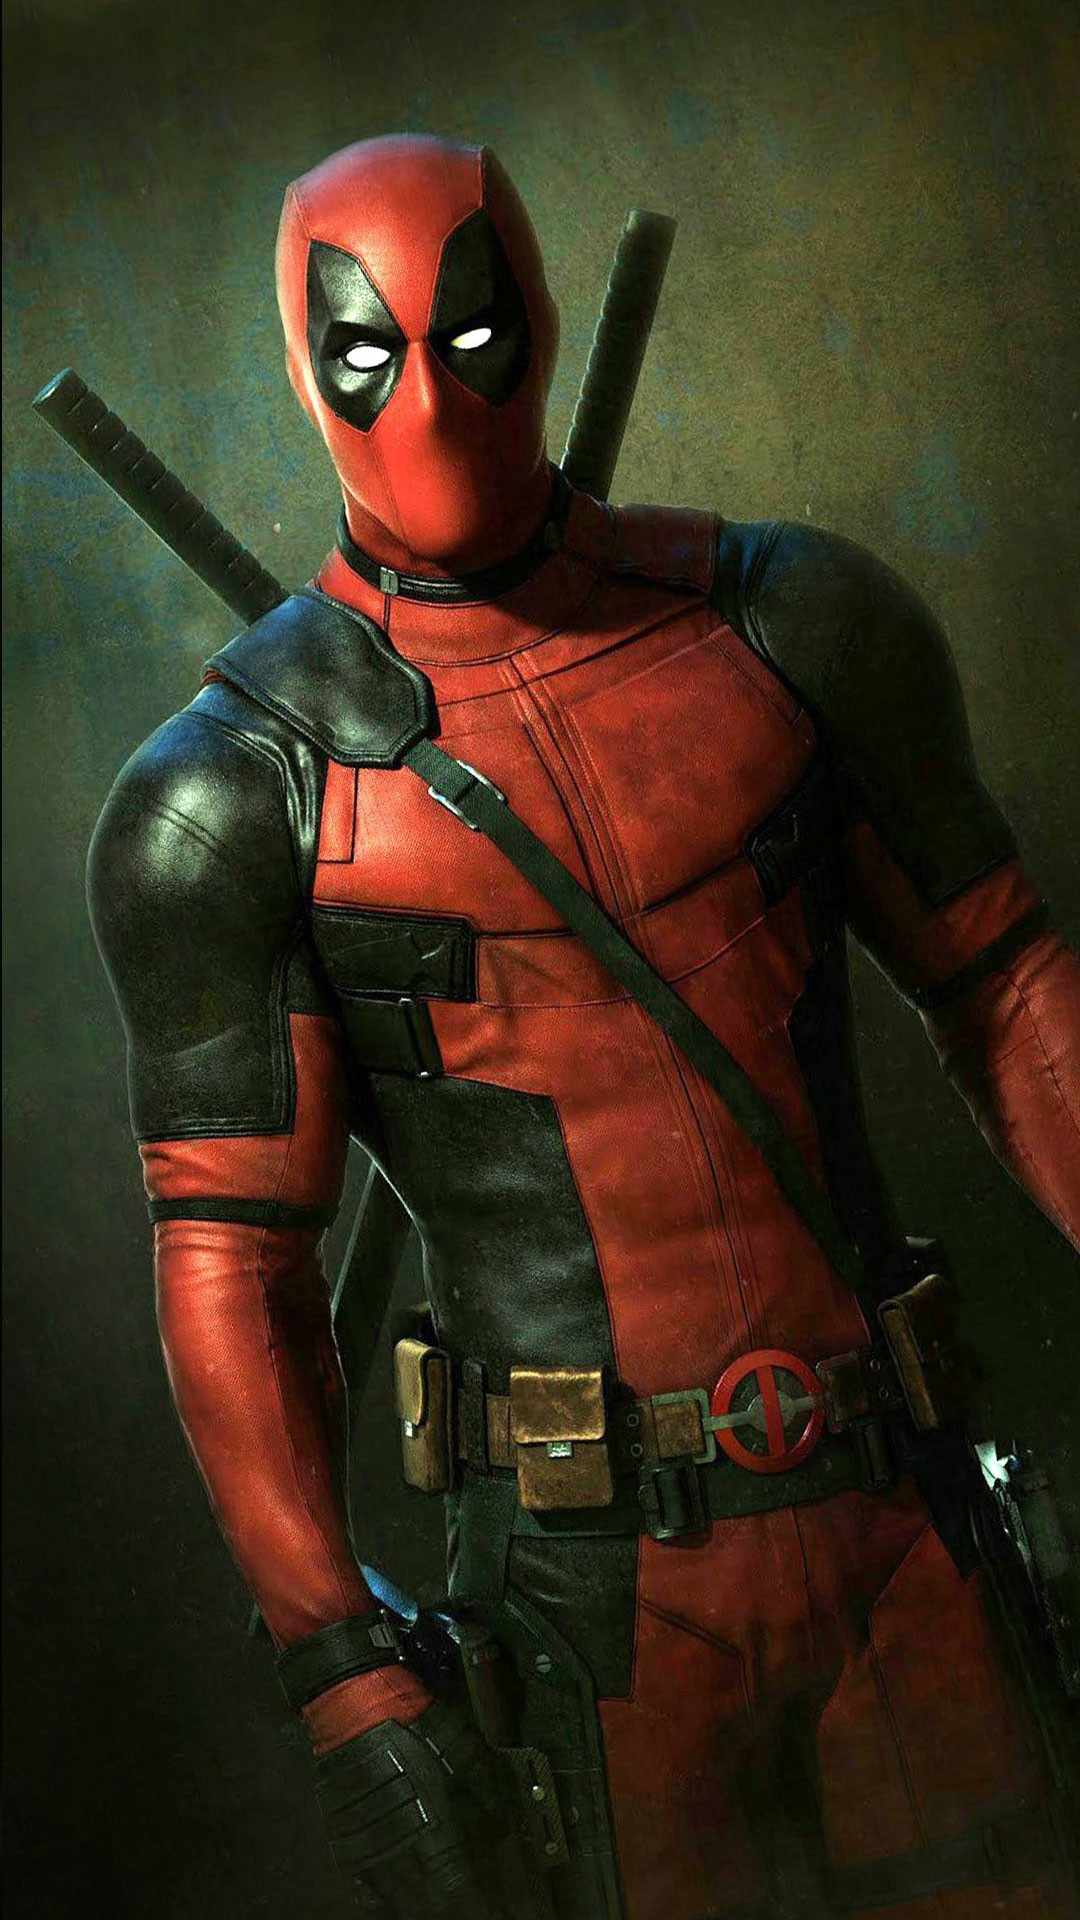 Deadpool from the movie